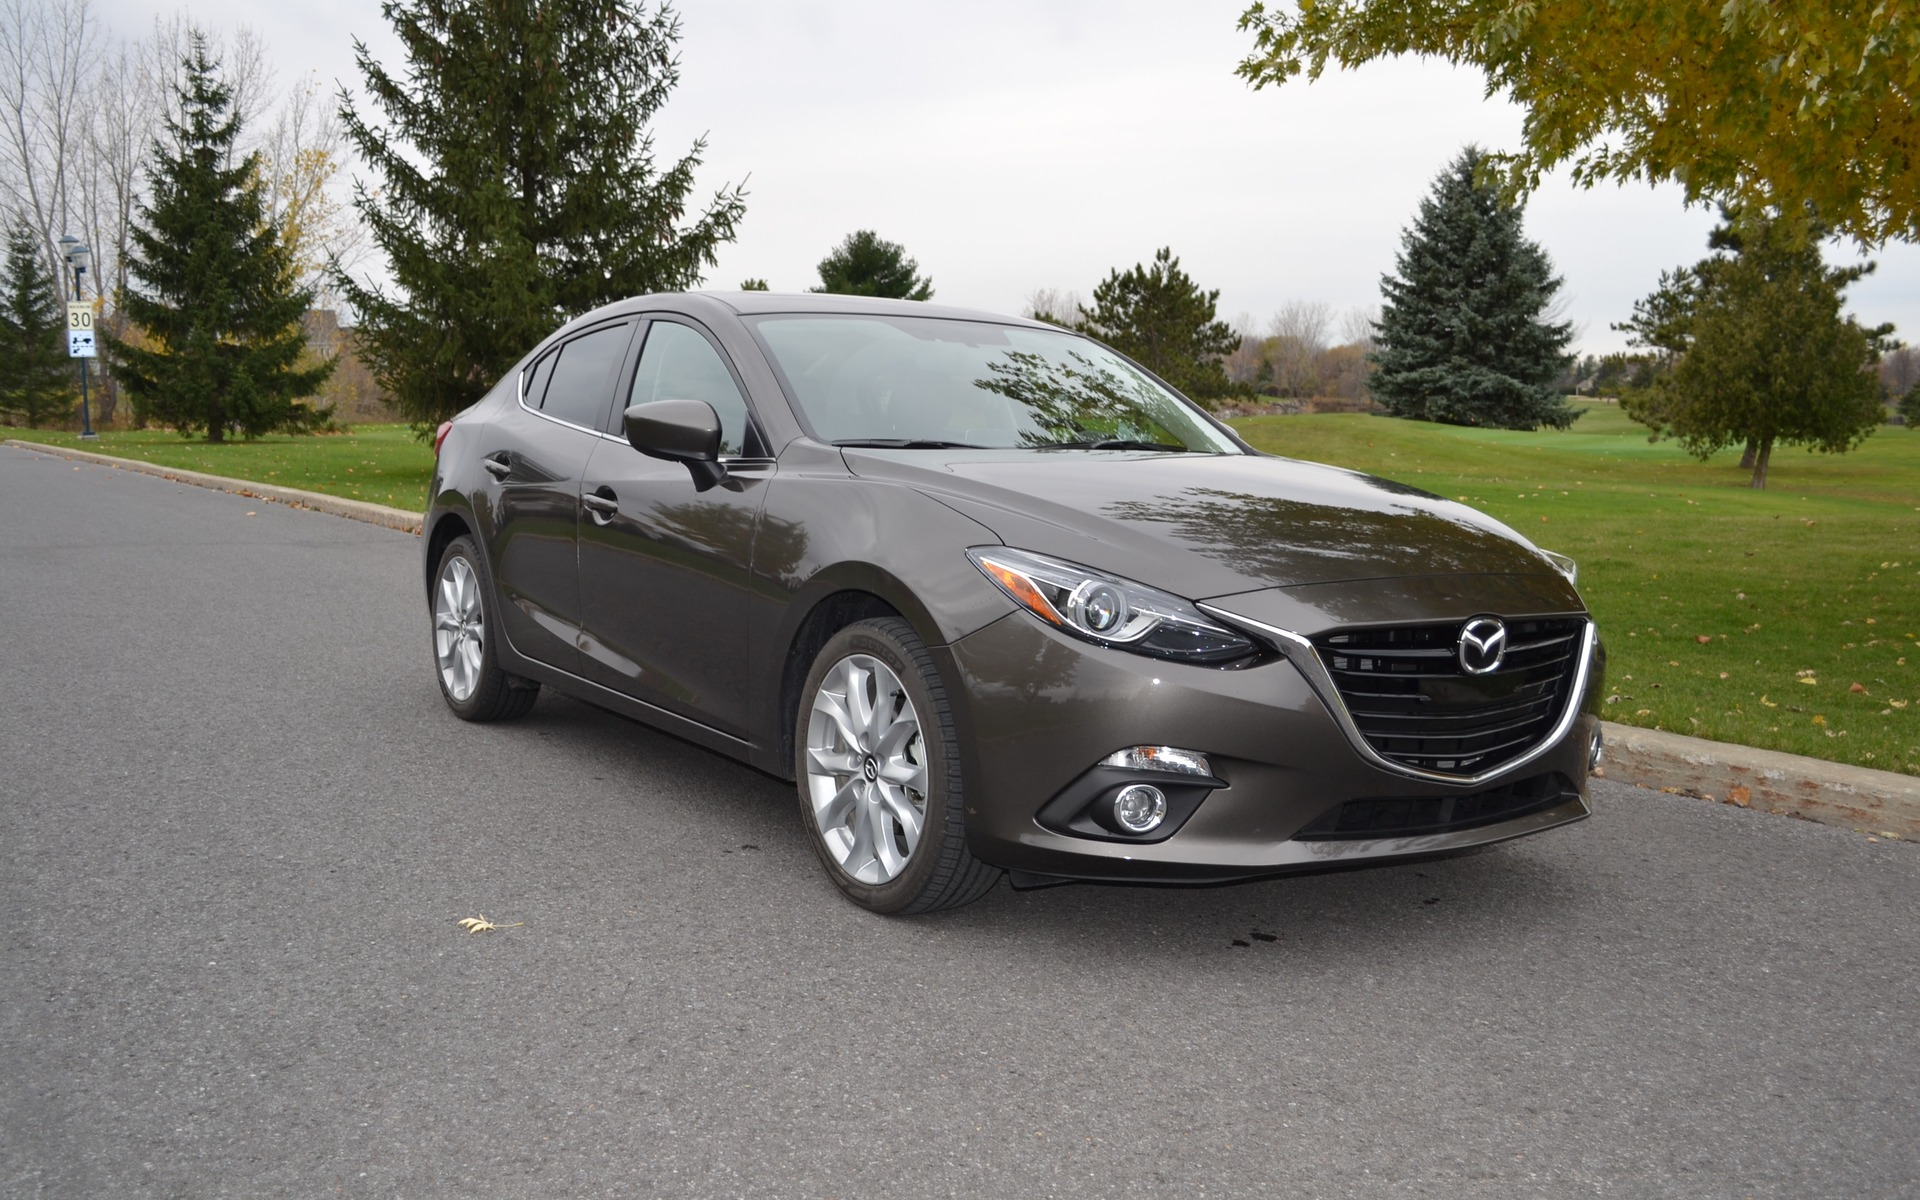 We like the Mazda3 primarily for its style and dynamic ride.